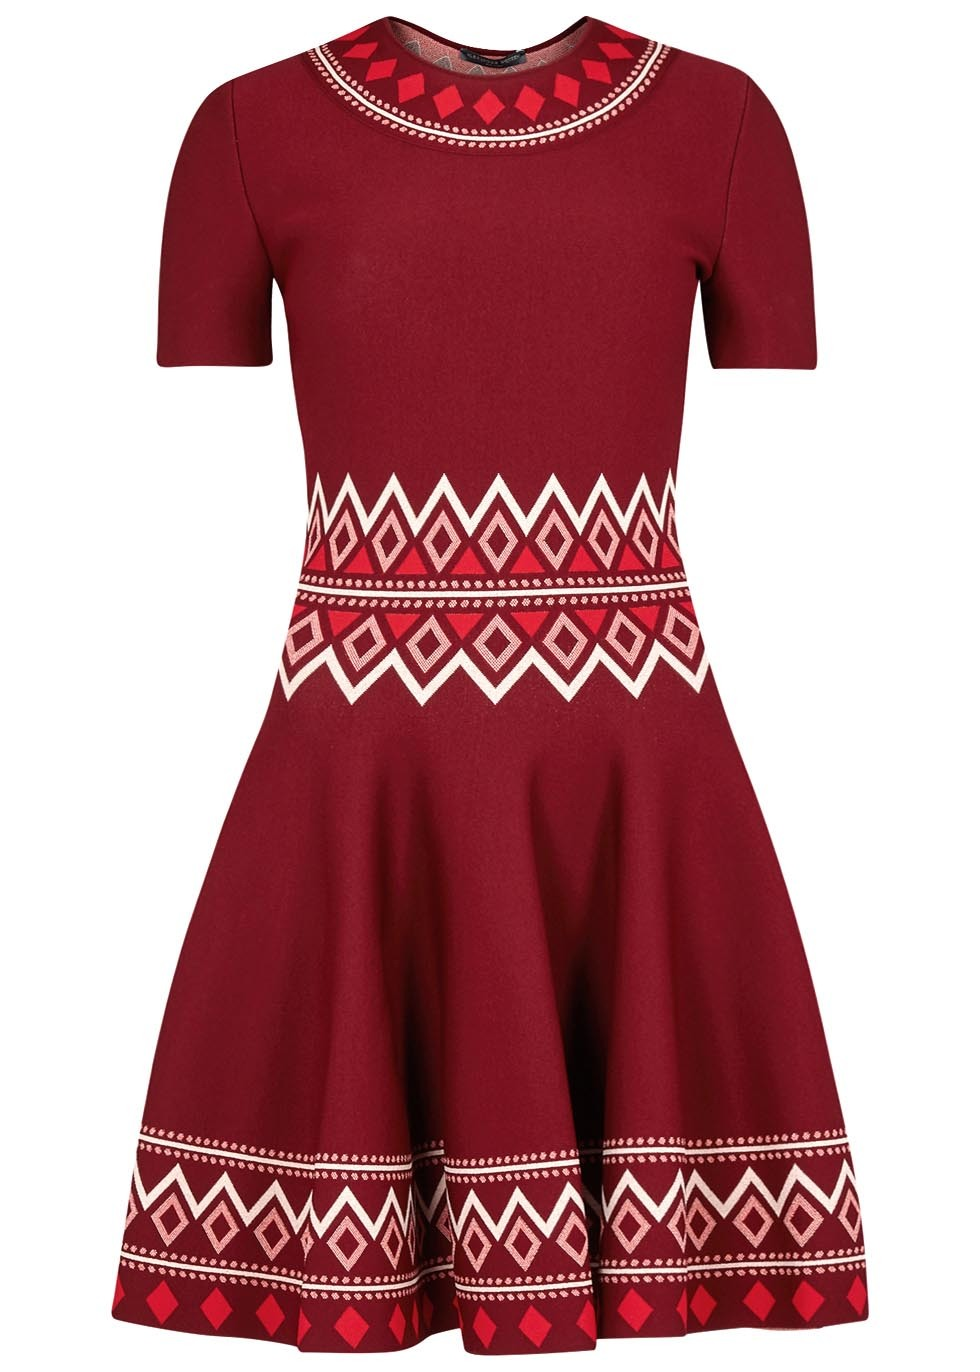 Claret Geometric Stretch Knit Dress - secondary colour: white; predominant colour: burgundy; occasions: casual, creative work; length: just above the knee; fit: fitted at waist & bust; style: fit & flare; neckline: crew; sleeve length: short sleeve; sleeve style: standard; pattern type: fabric; pattern: patterned/print; texture group: jersey - stretchy/drapey; fibres: viscose/rayon - mix; multicoloured: multicoloured; season: a/w 2016; wardrobe: highlight